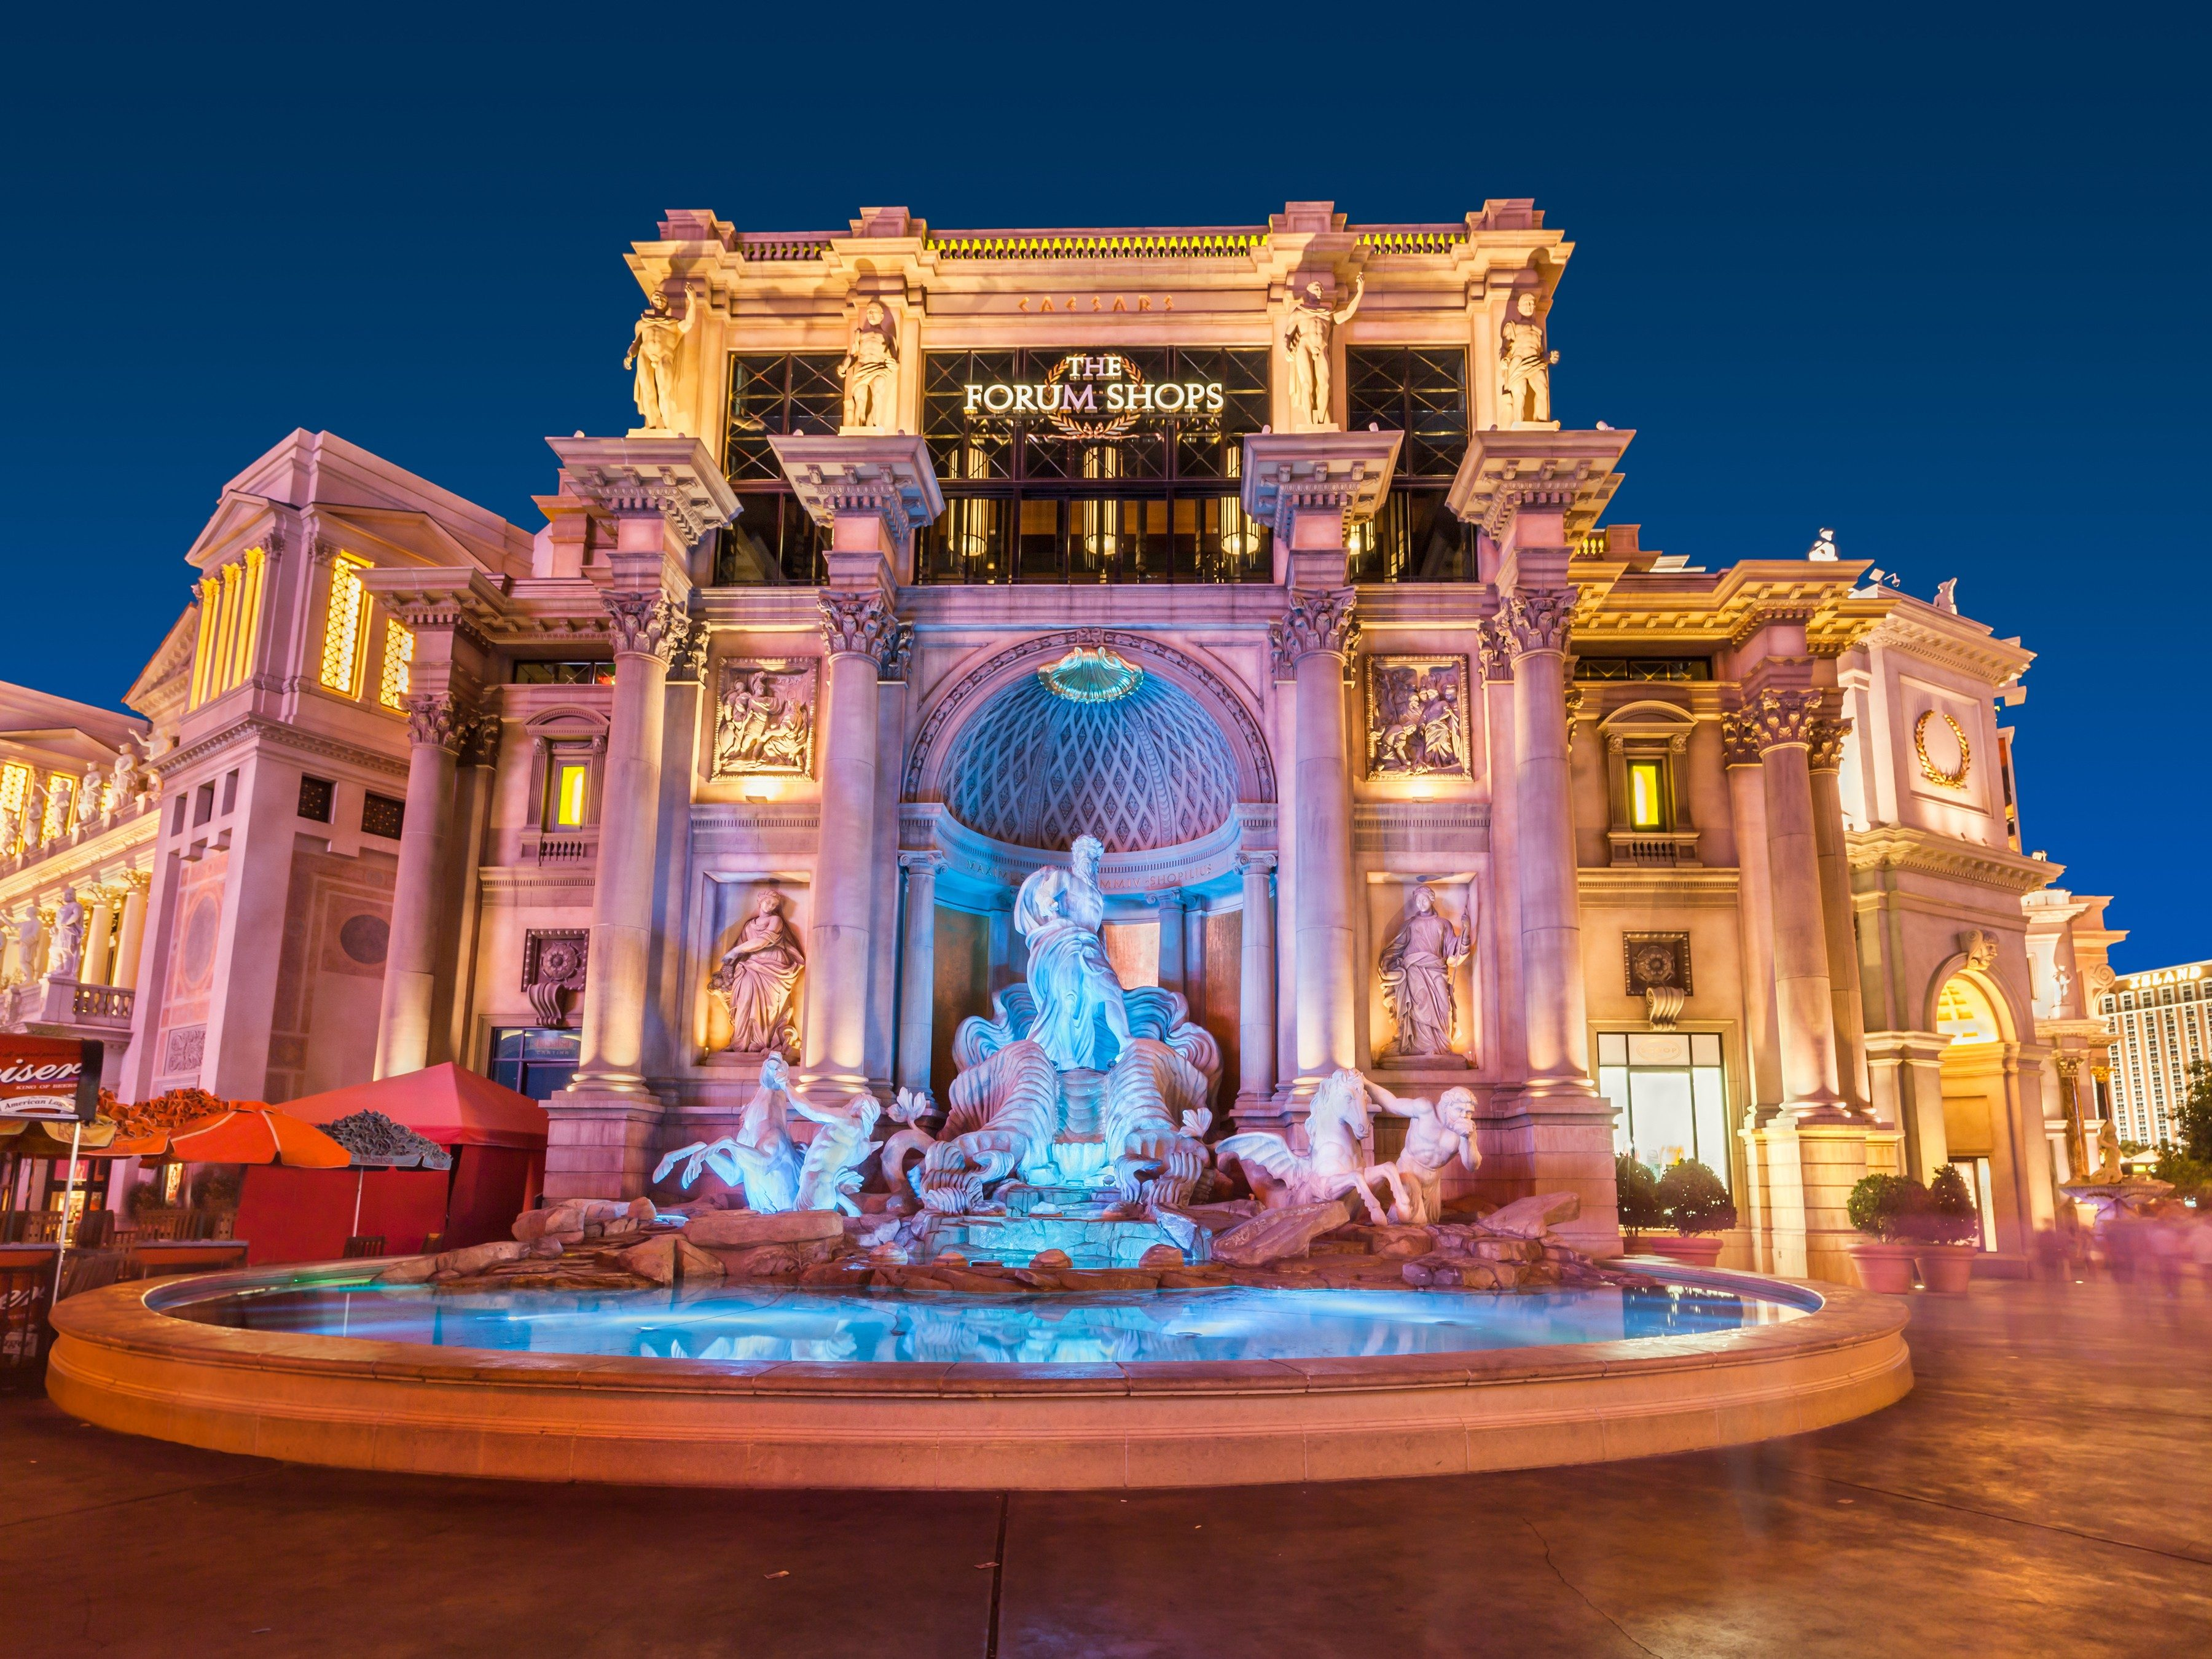 10 Amazing Reasons to Visit Las Vegas: The Forum Shops at Caesars